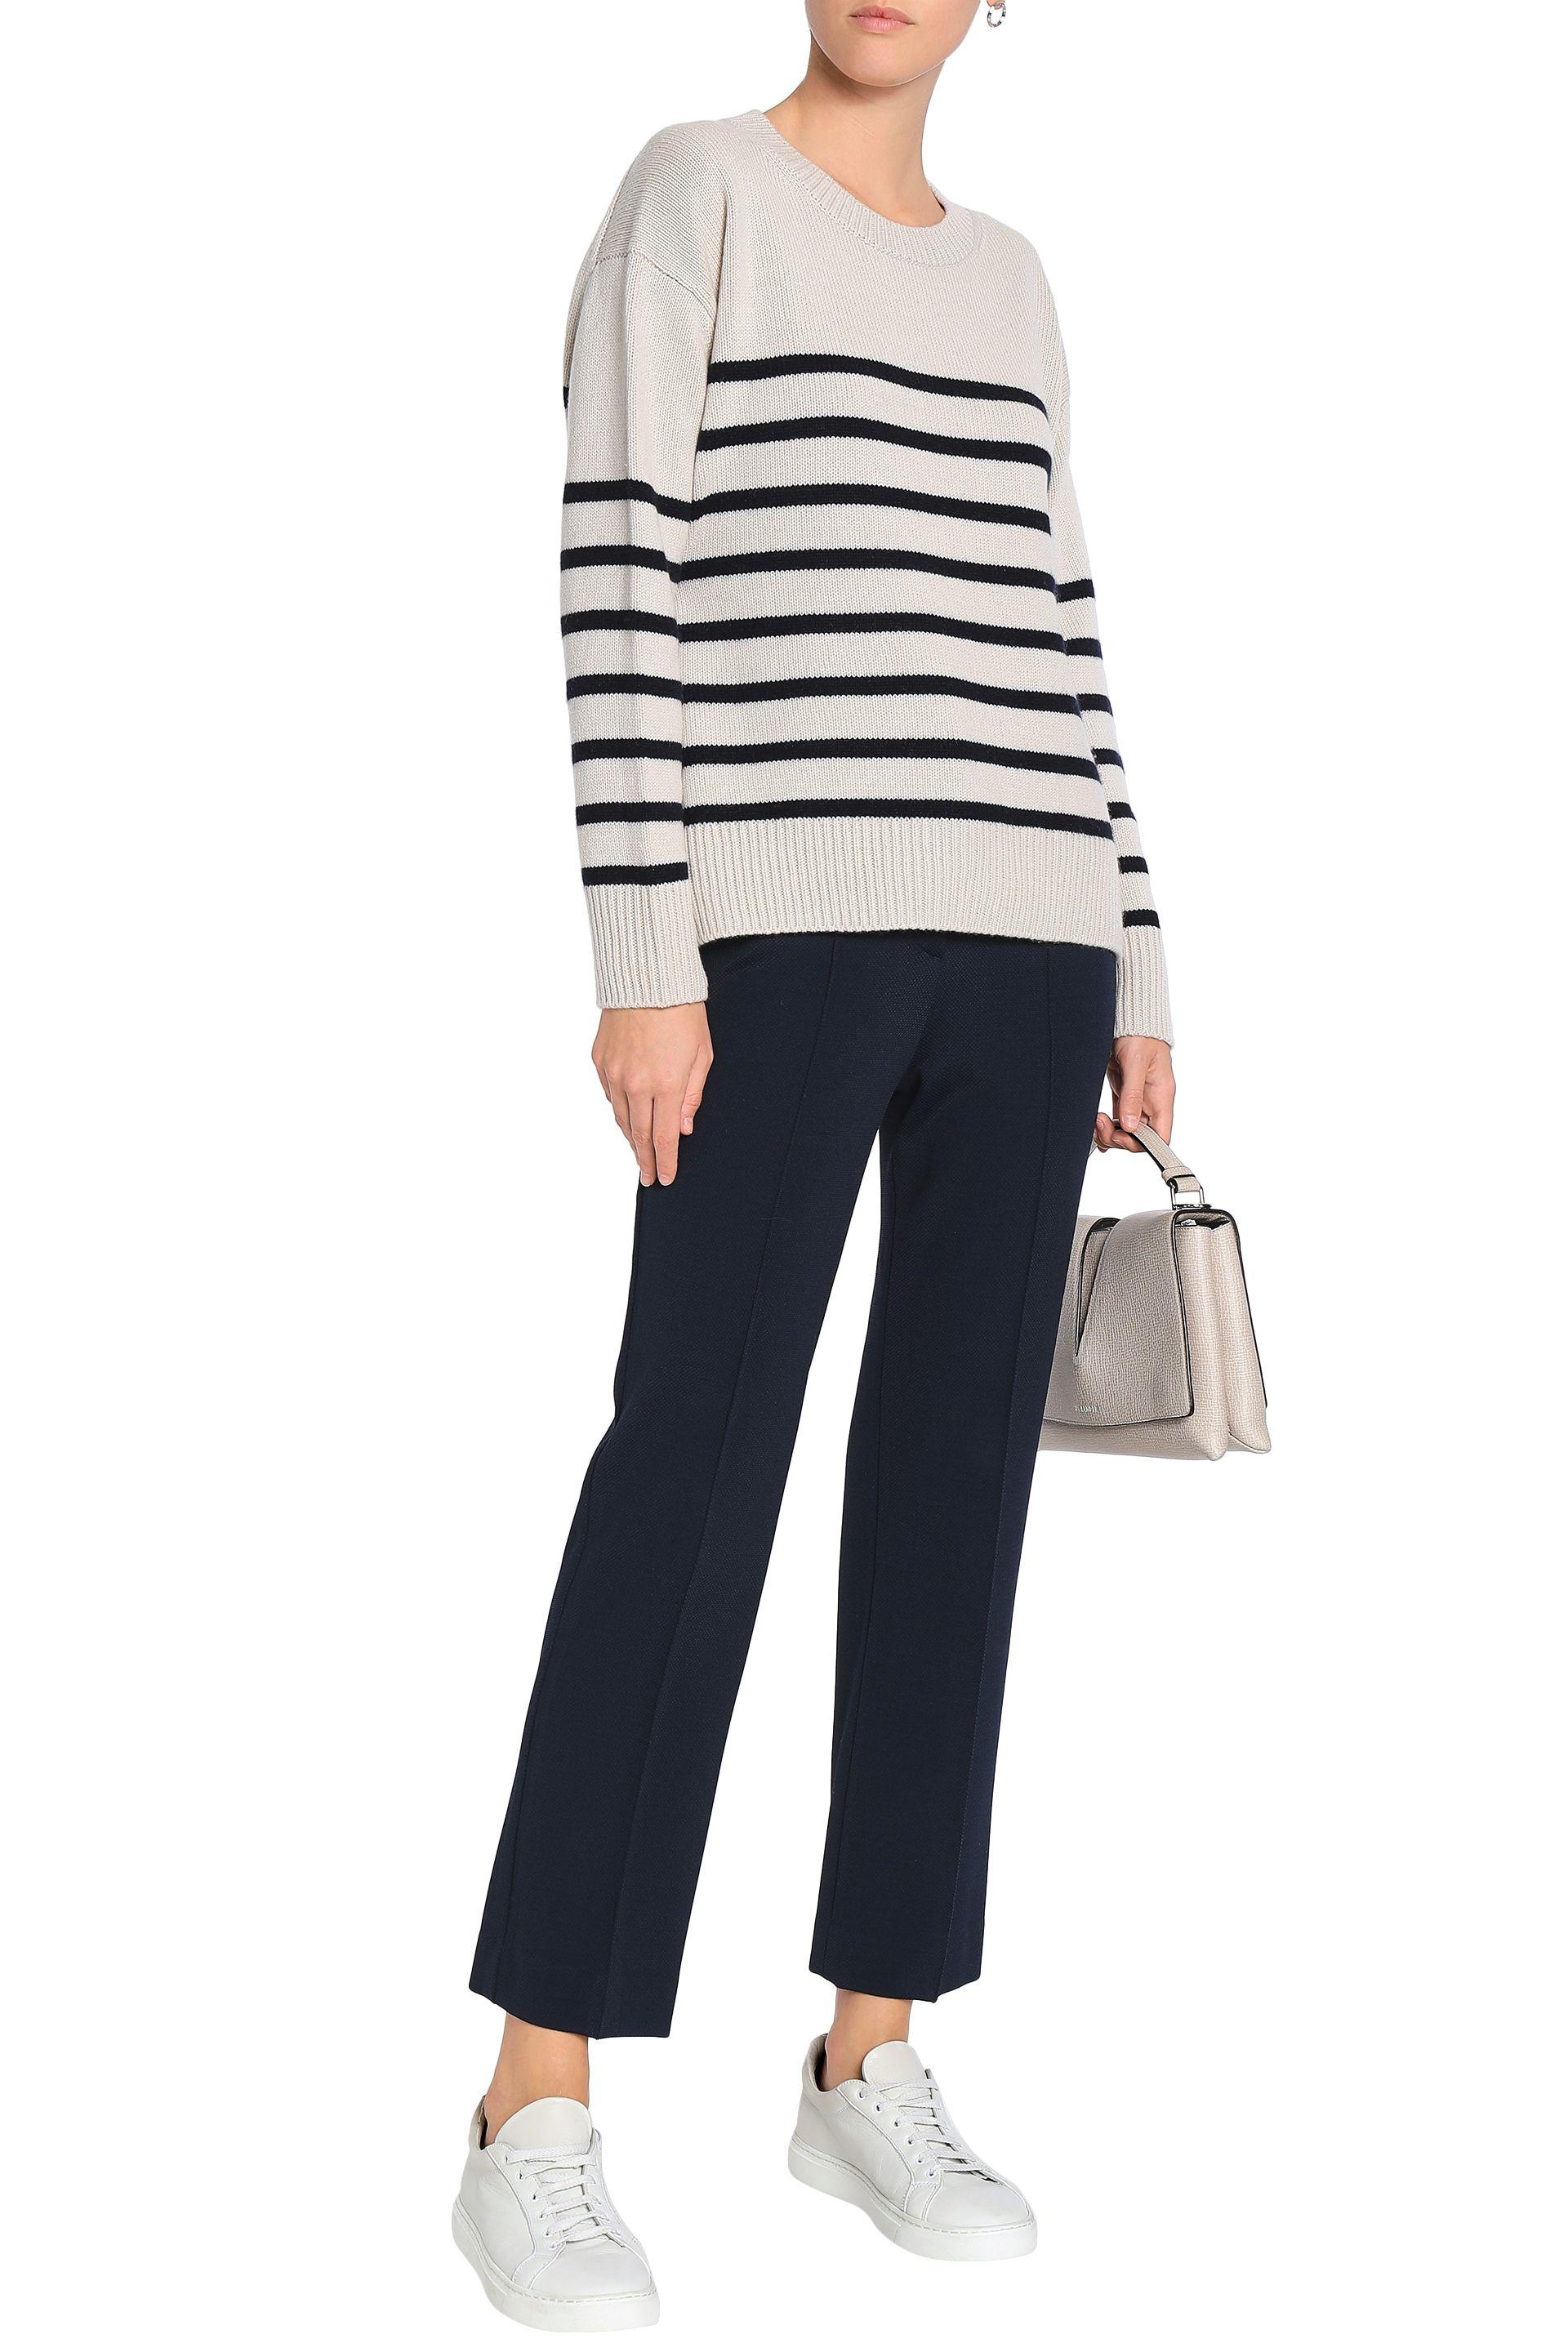 ad9ba6c6ad8 Vince Woman Tie-back Striped Cashmere Sweater Neutral - Lyst